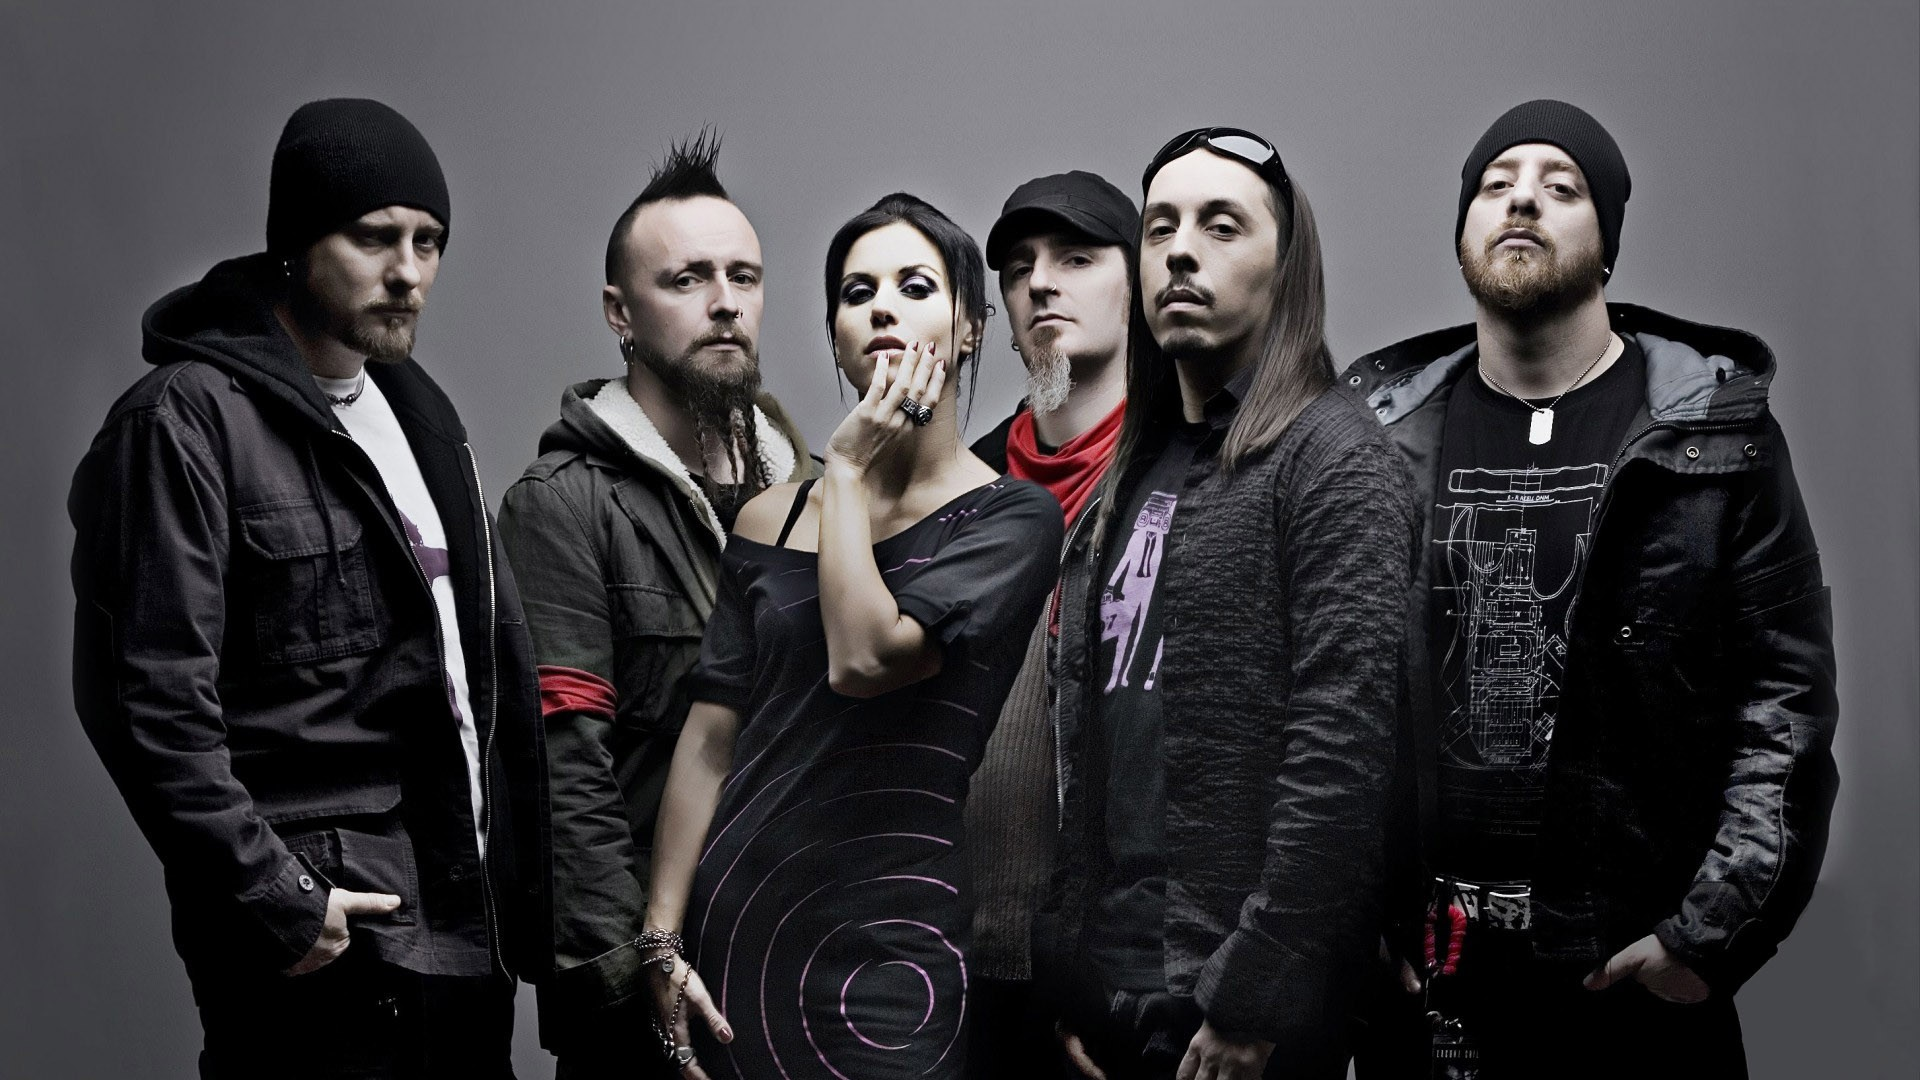 1920x1080 Download Wallpaper  lacuna coil, dress, iroquois, clothes, glasses  Full HD 1080p HD Background